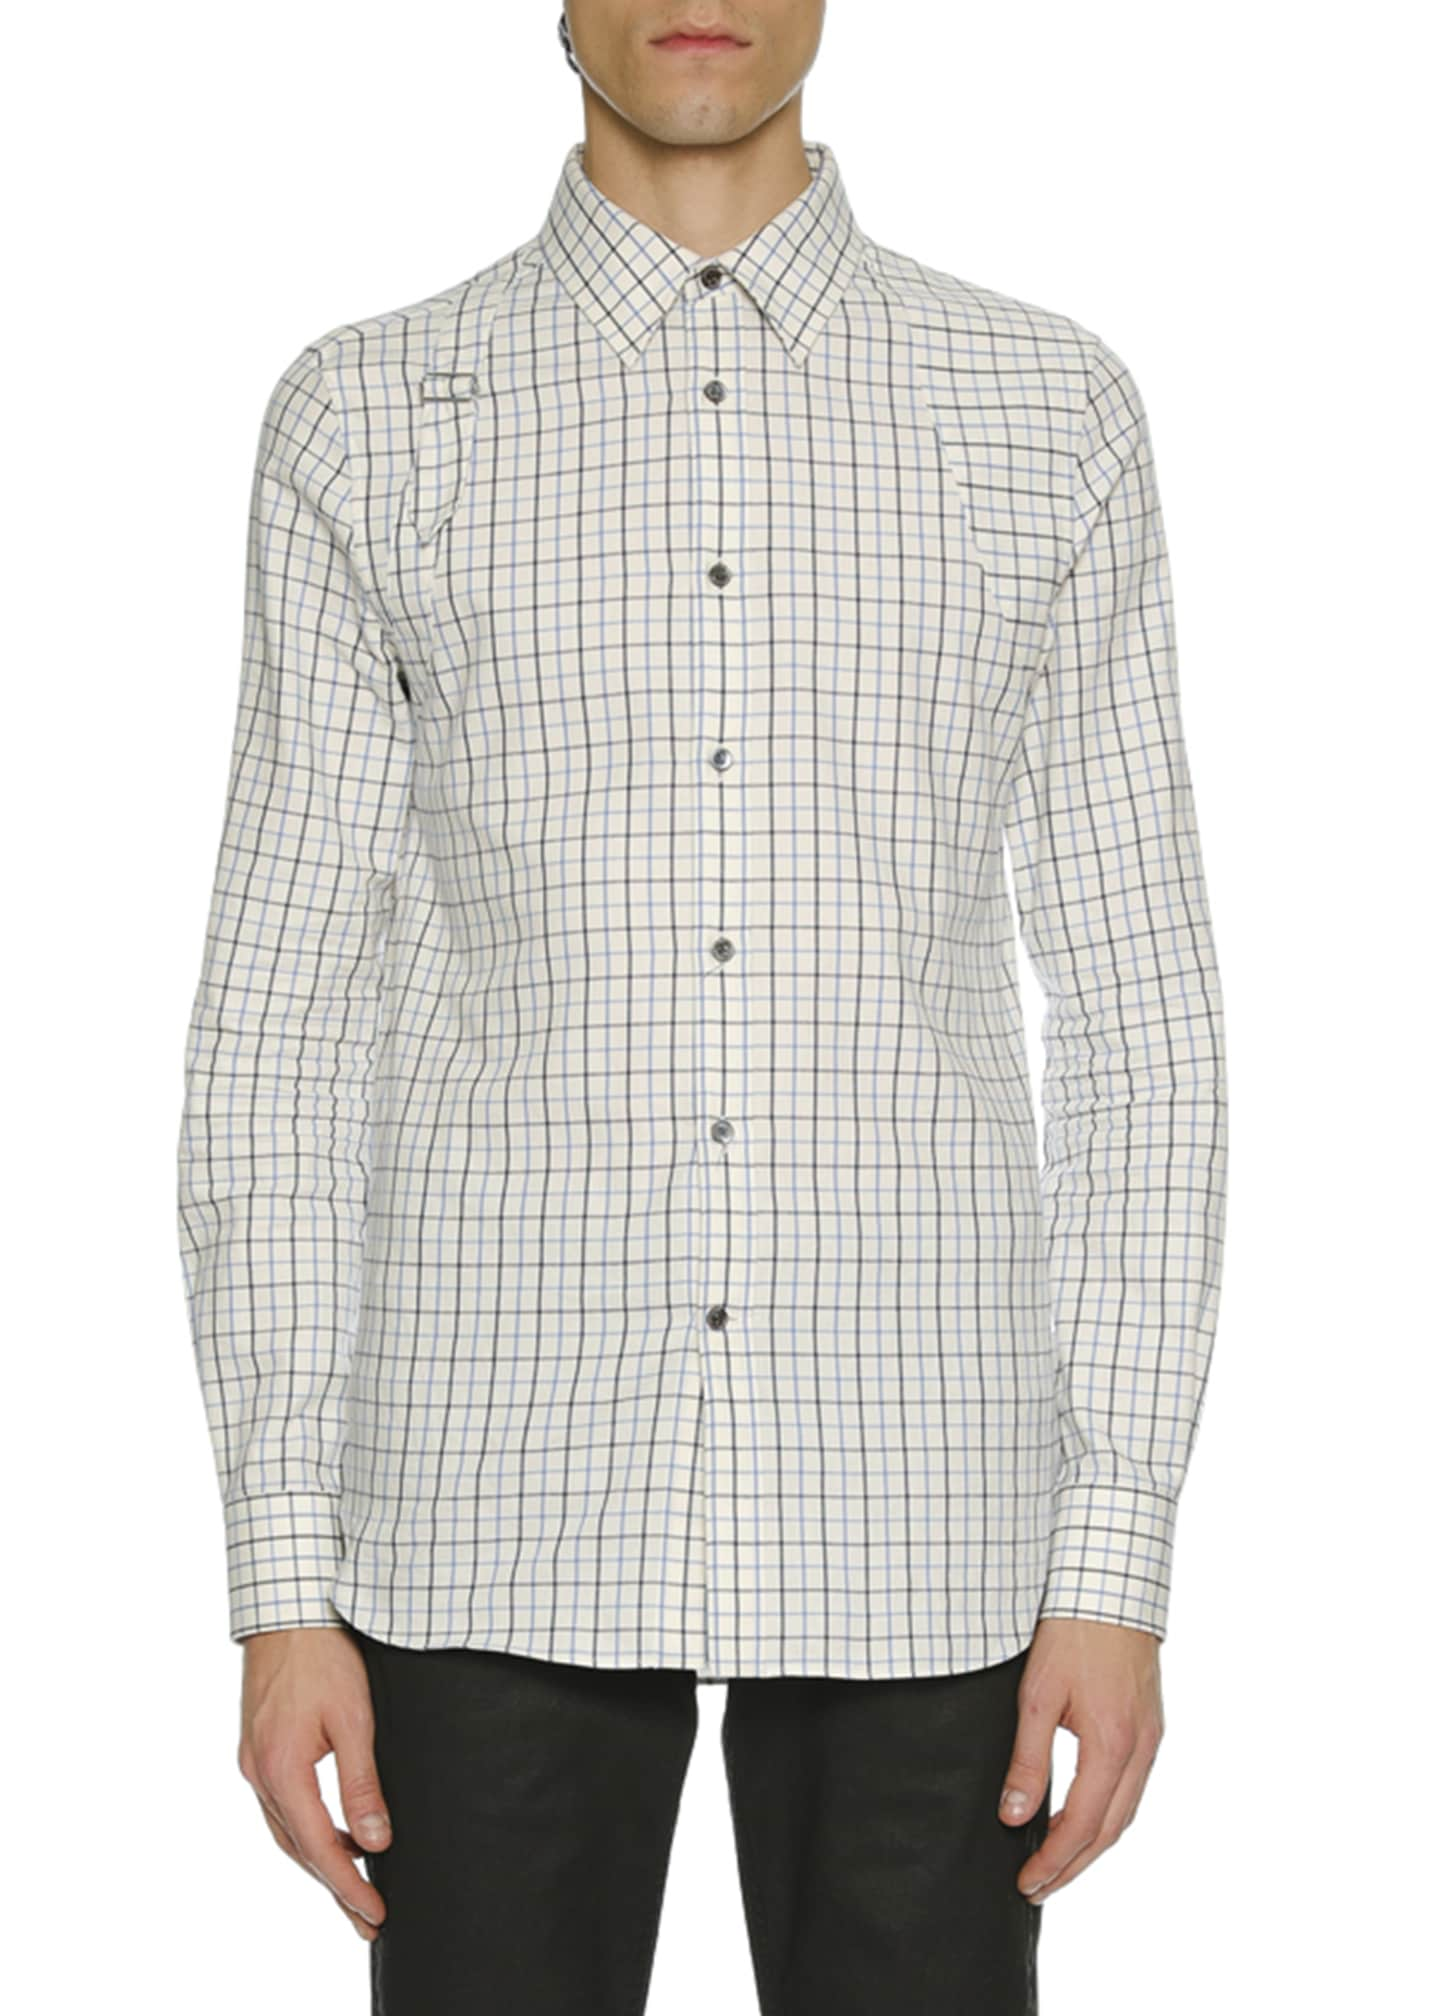 Alexander McQueen Men's Check Buckle-Detail Sport Shirt